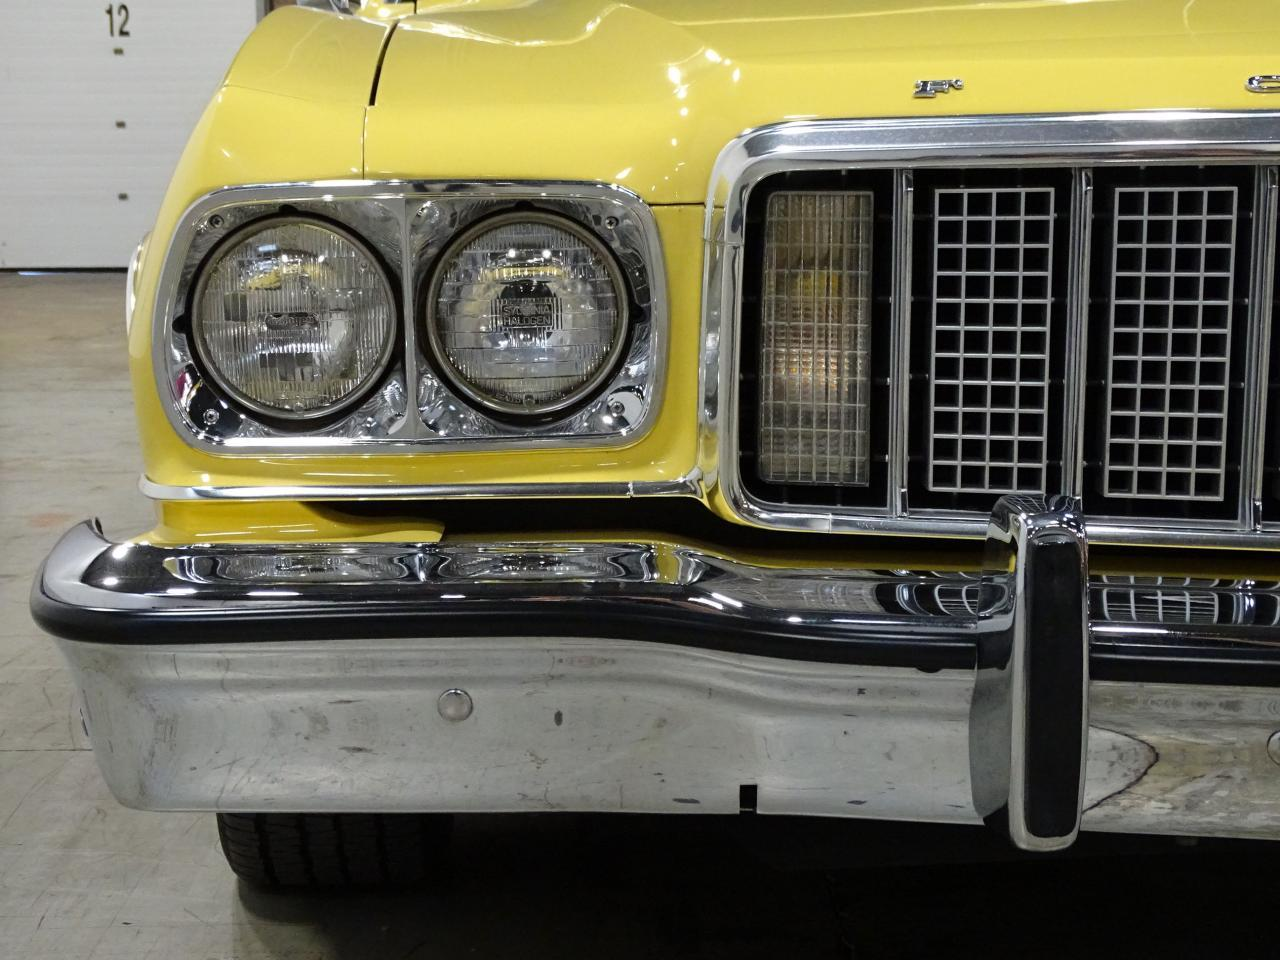 Large Picture of '76 Ford Ranchero located in New Jersey - $20,995.00 Offered by Gateway Classic Cars - Philadelphia - MOAF